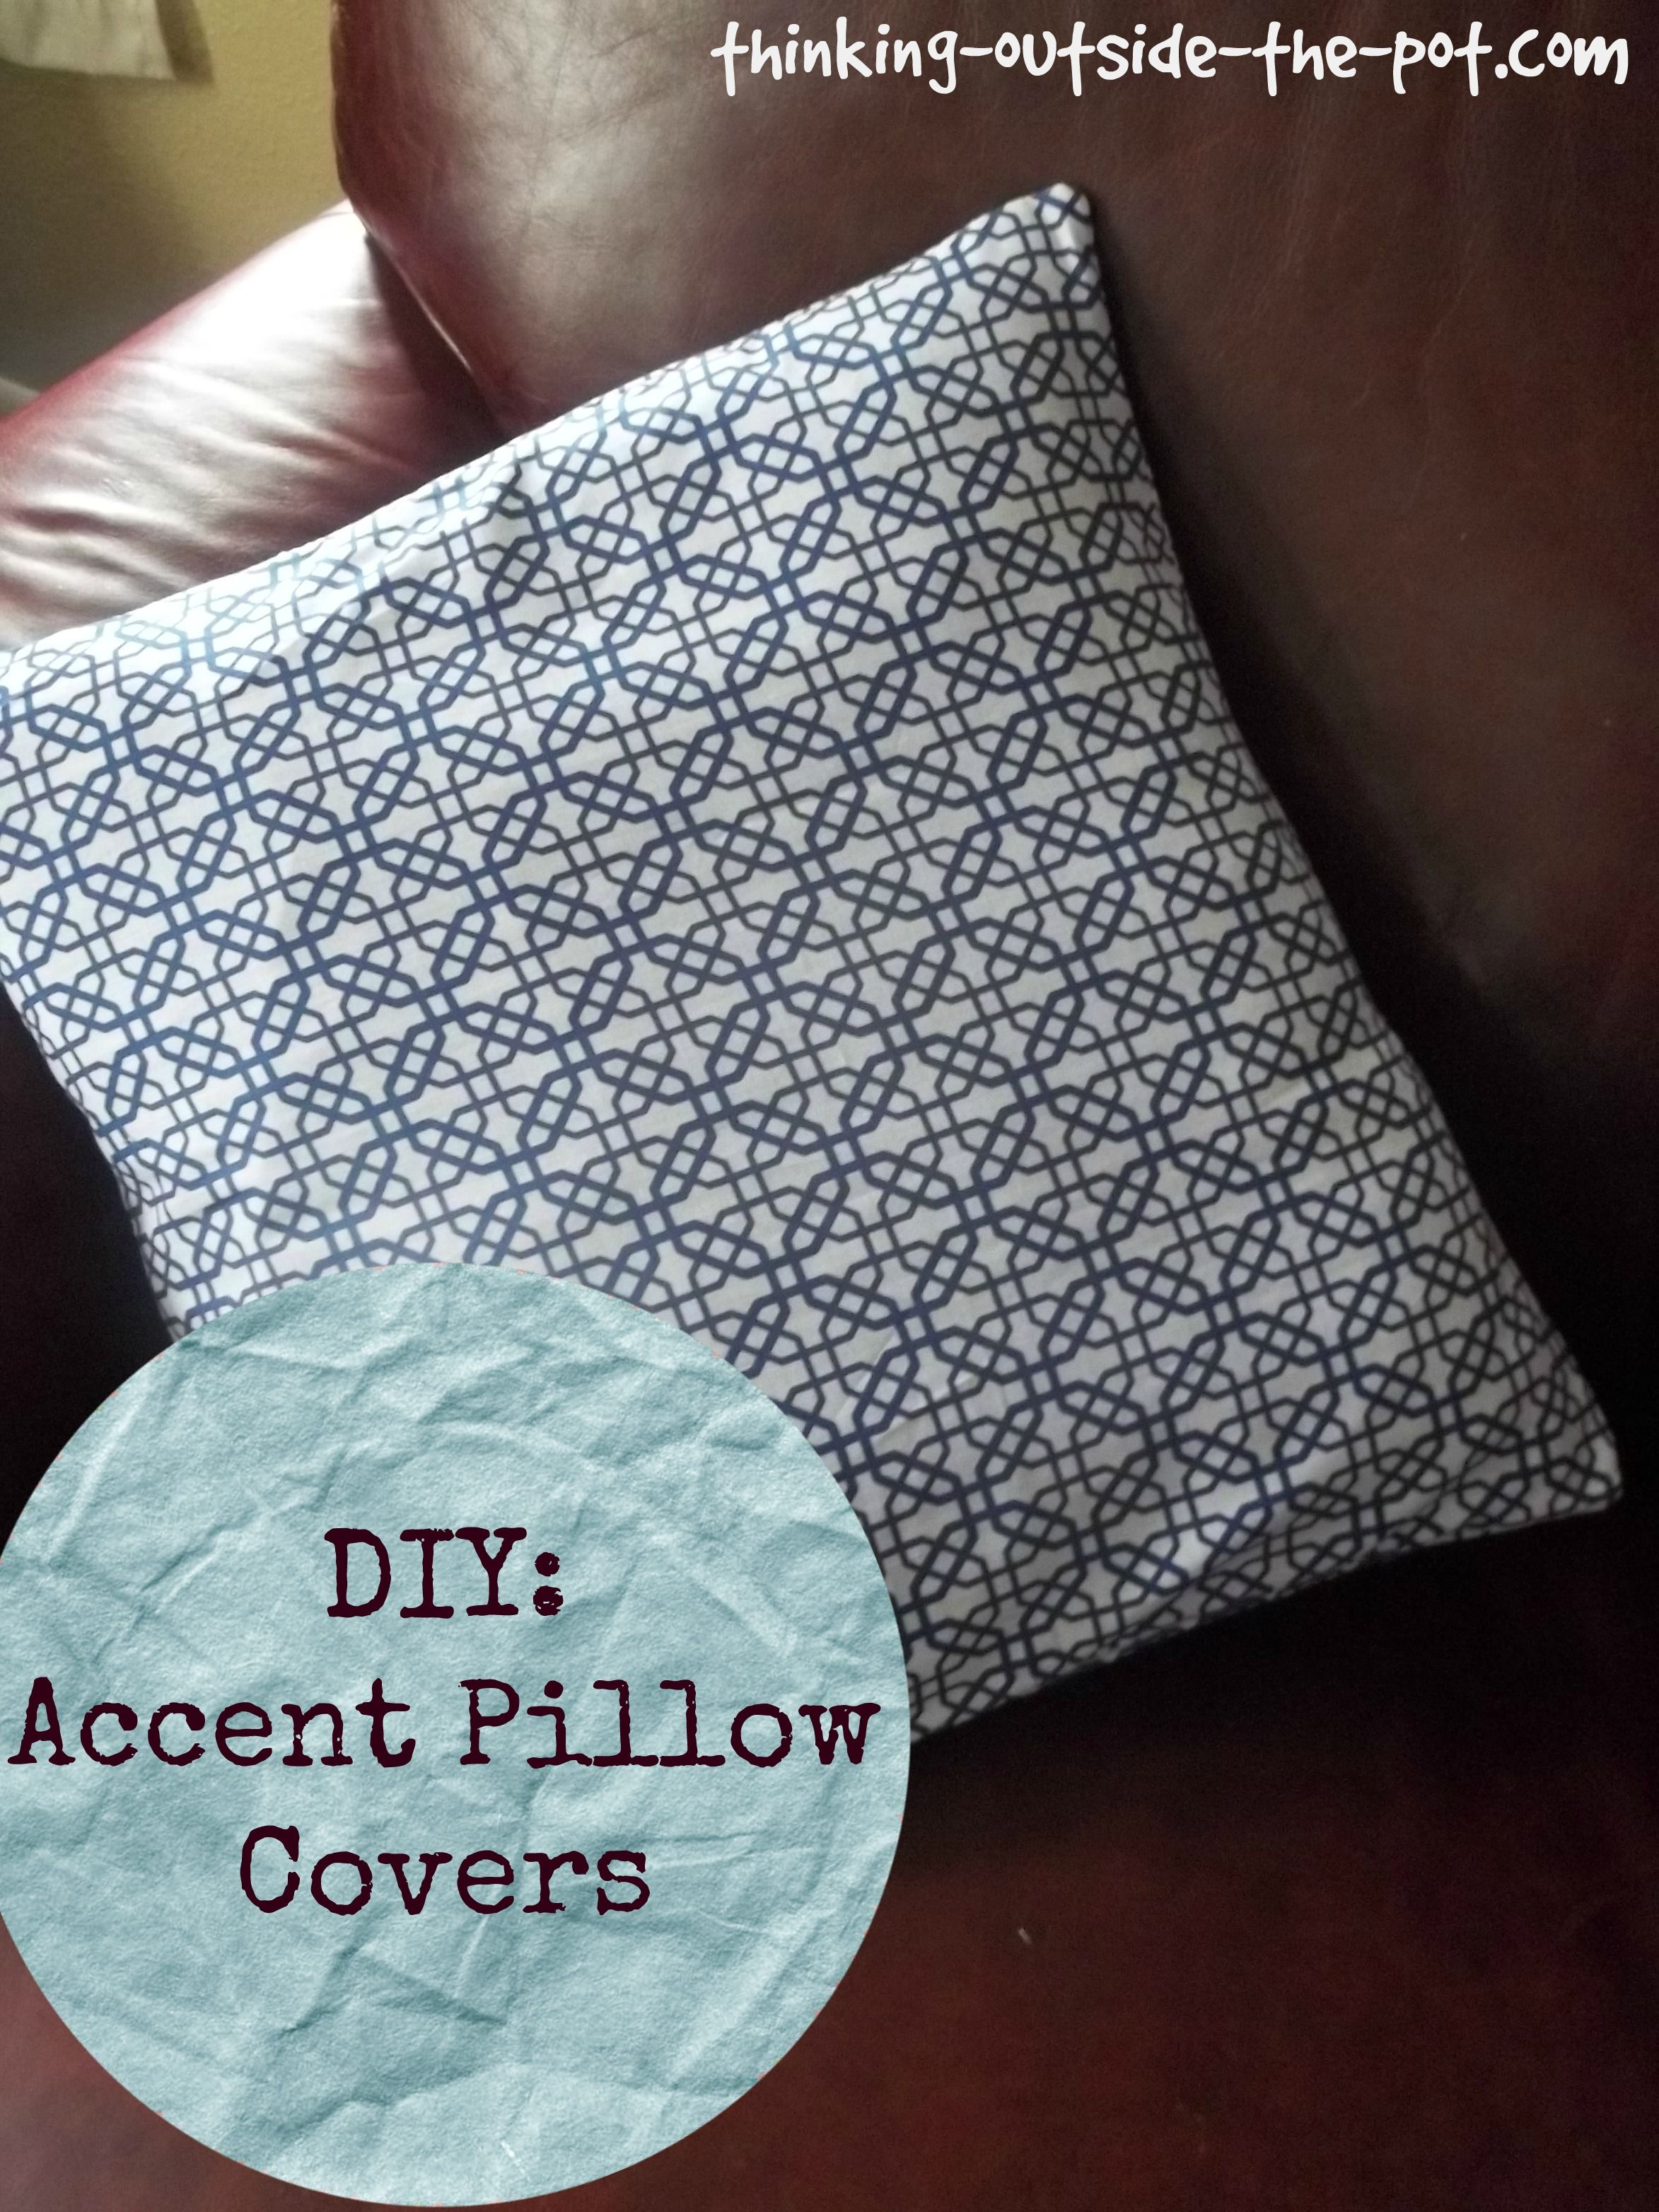 Diy accent pillow covers thinking outside the pot pinterest